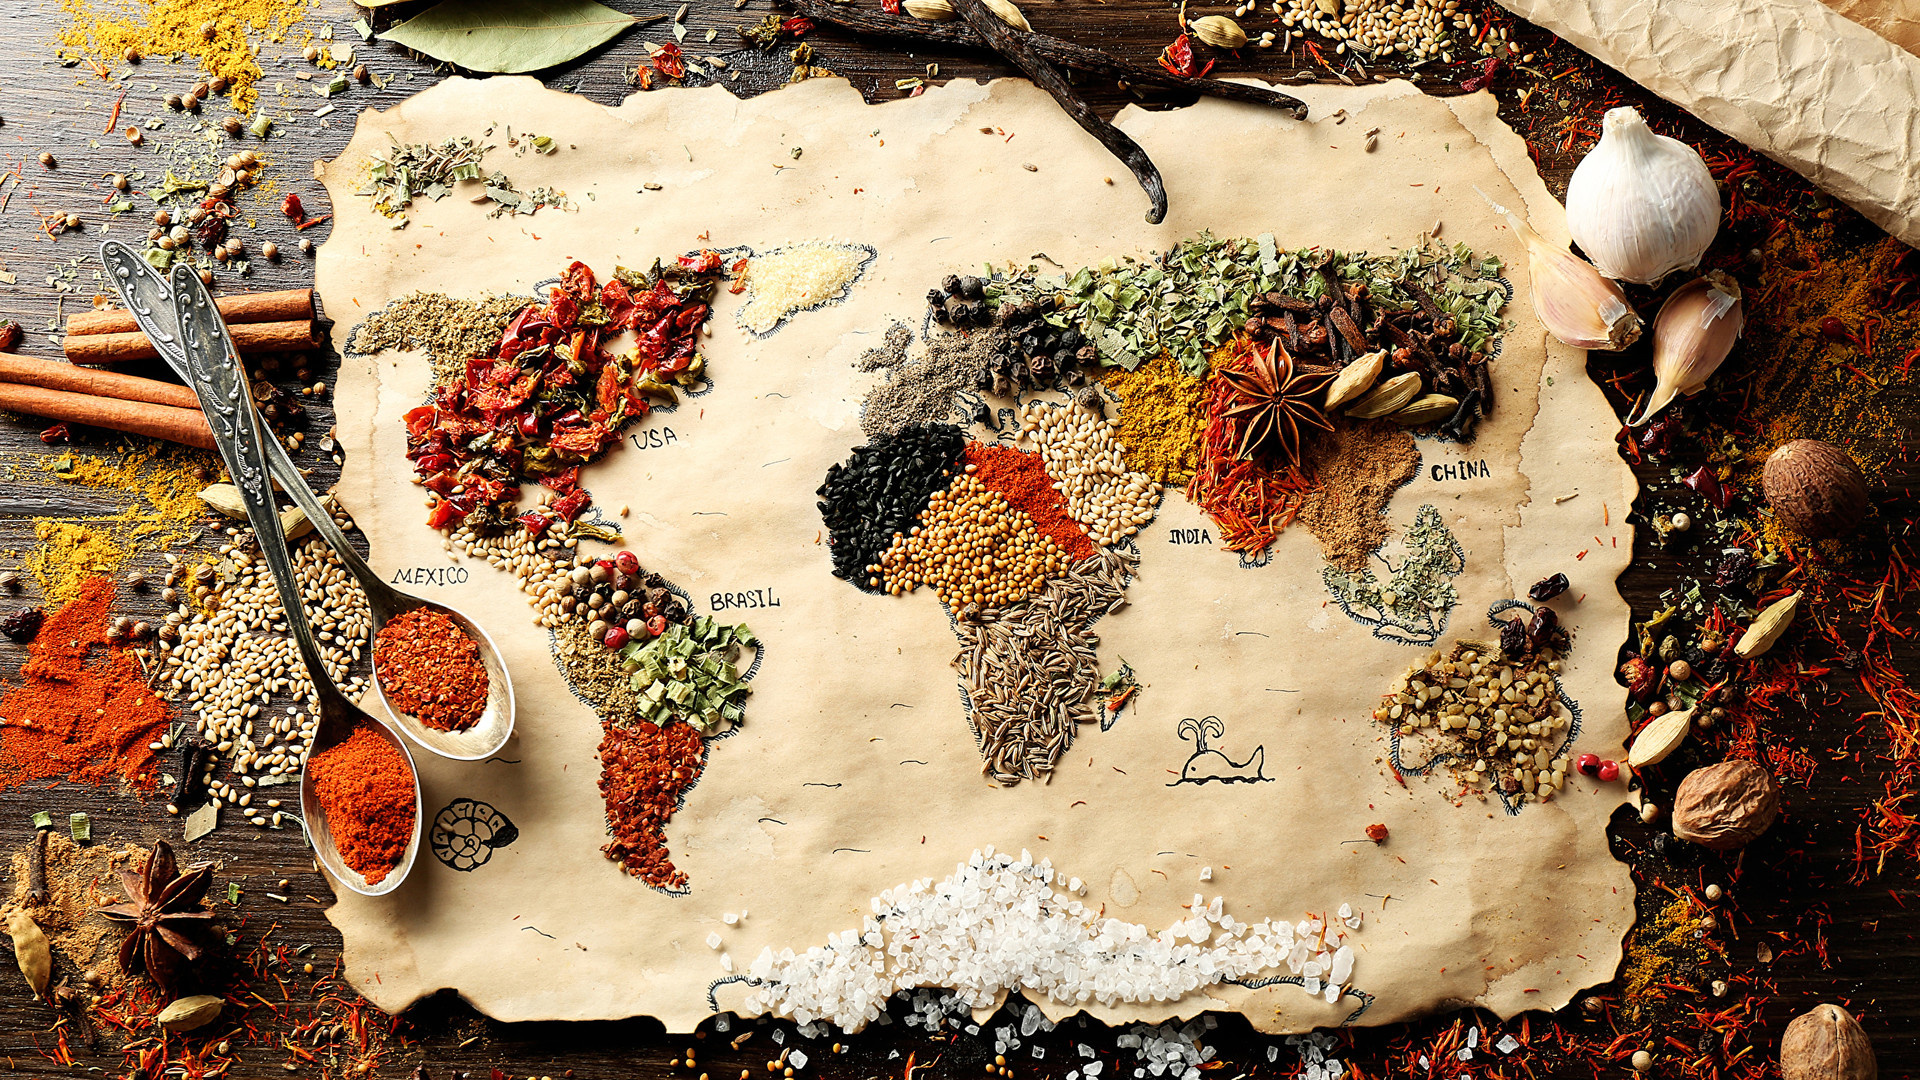 Geography_Spices_Many_542723_2560x1440.j